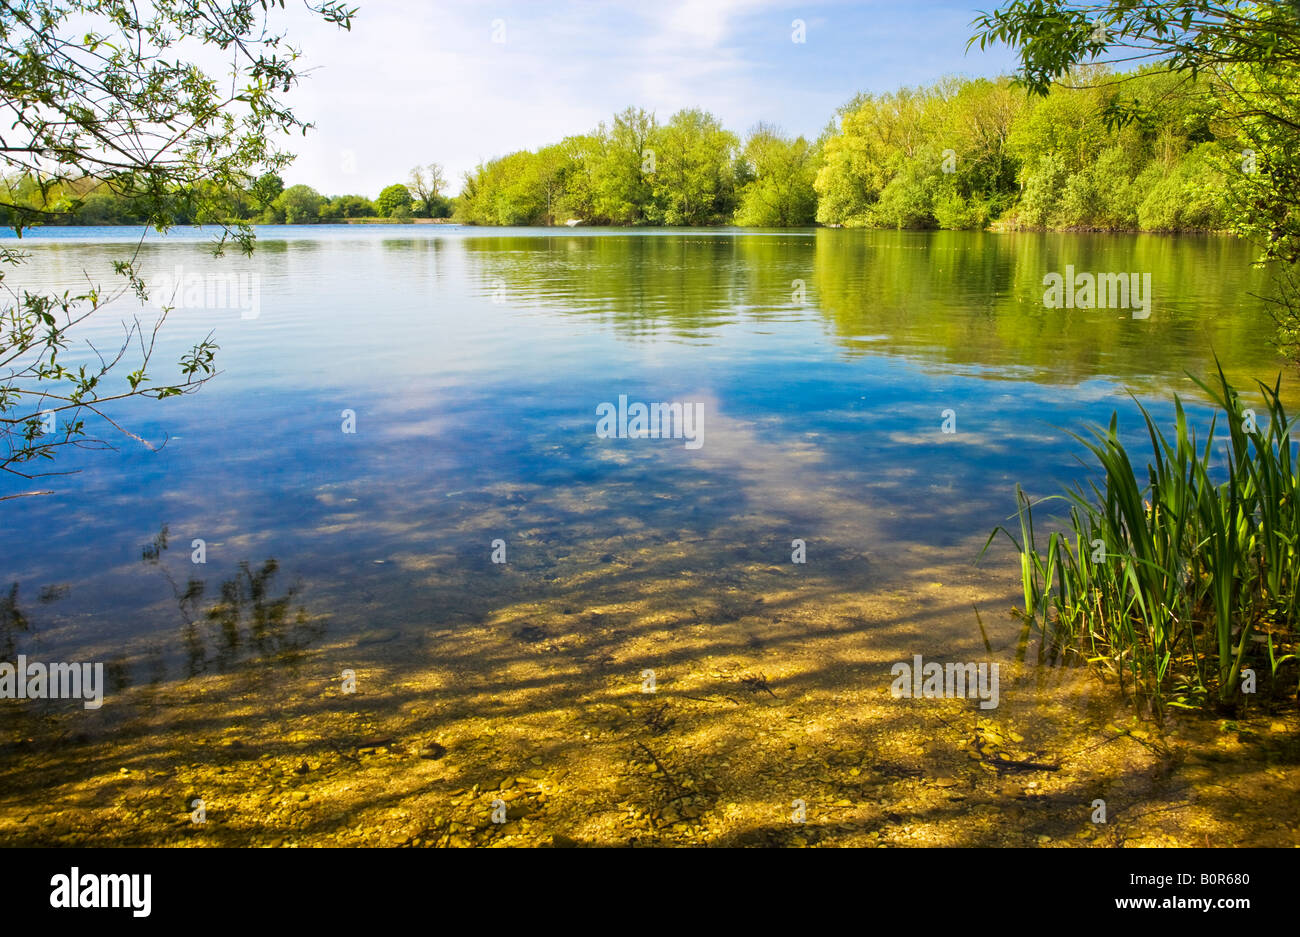 Cotswold Water Park Stock Photos & Cotswold Water Park Stock ...